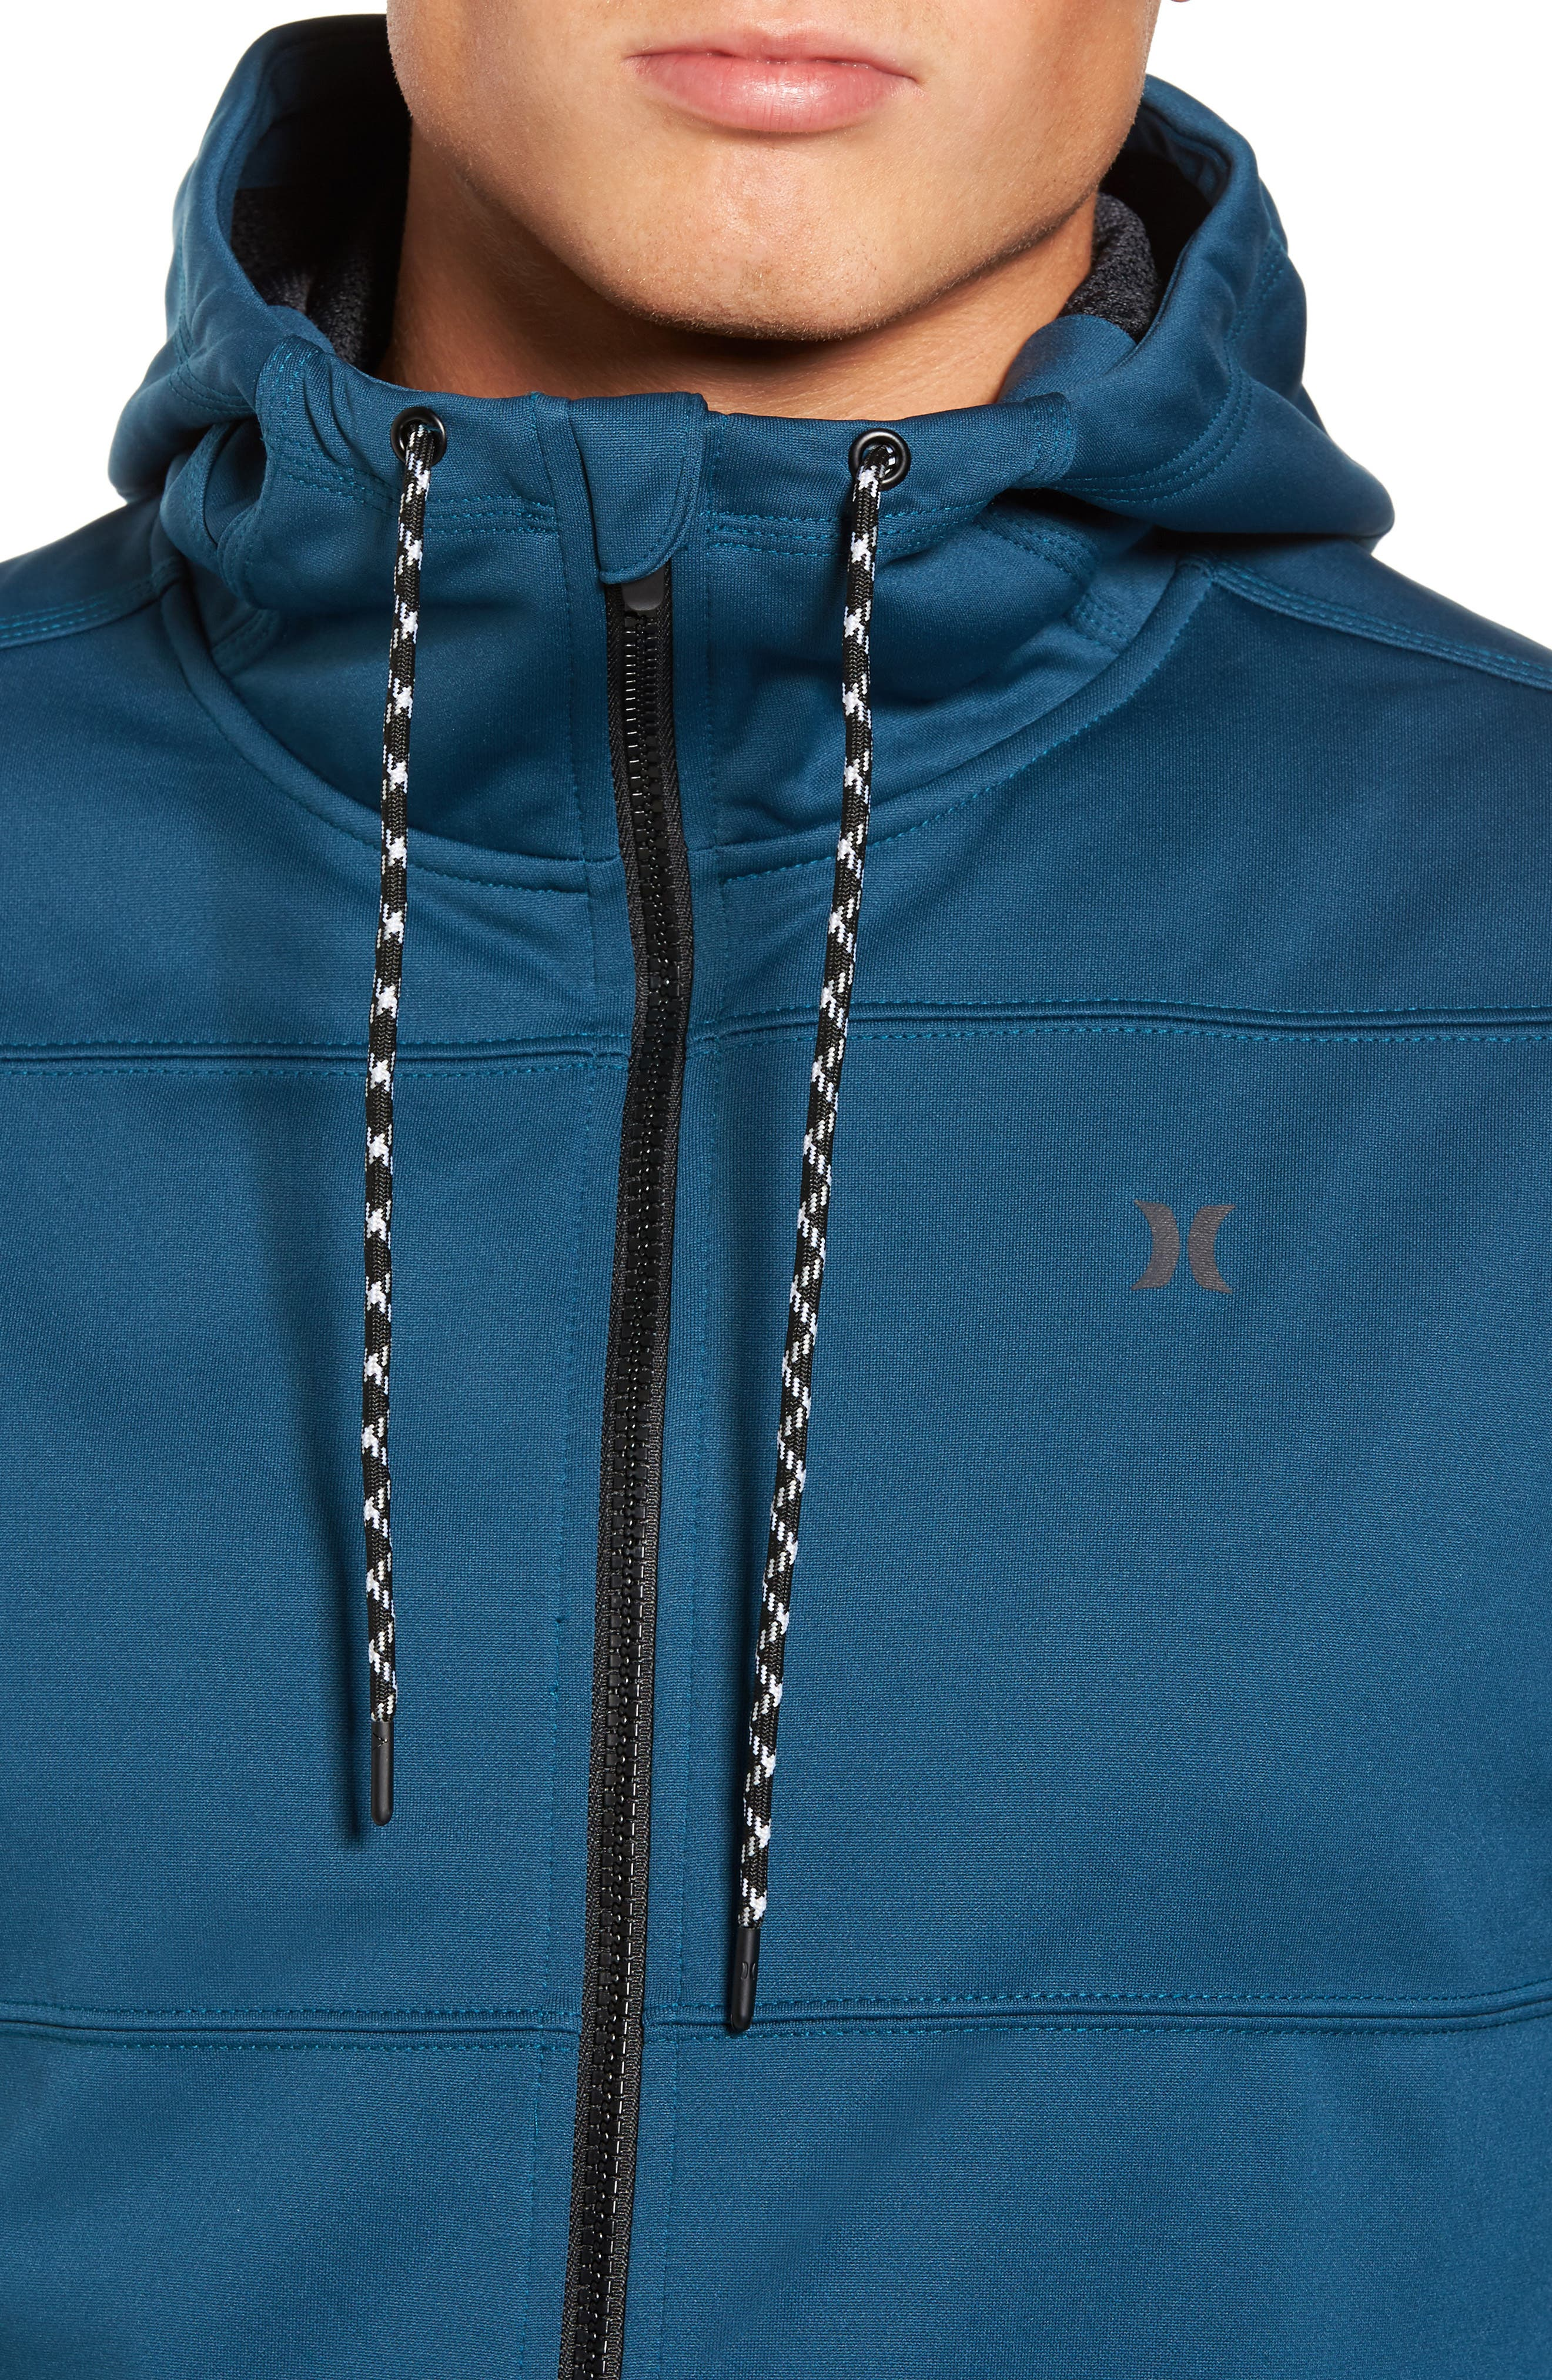 Therma Protect Zip Hoodie,                             Alternate thumbnail 4, color,                             Space Blue